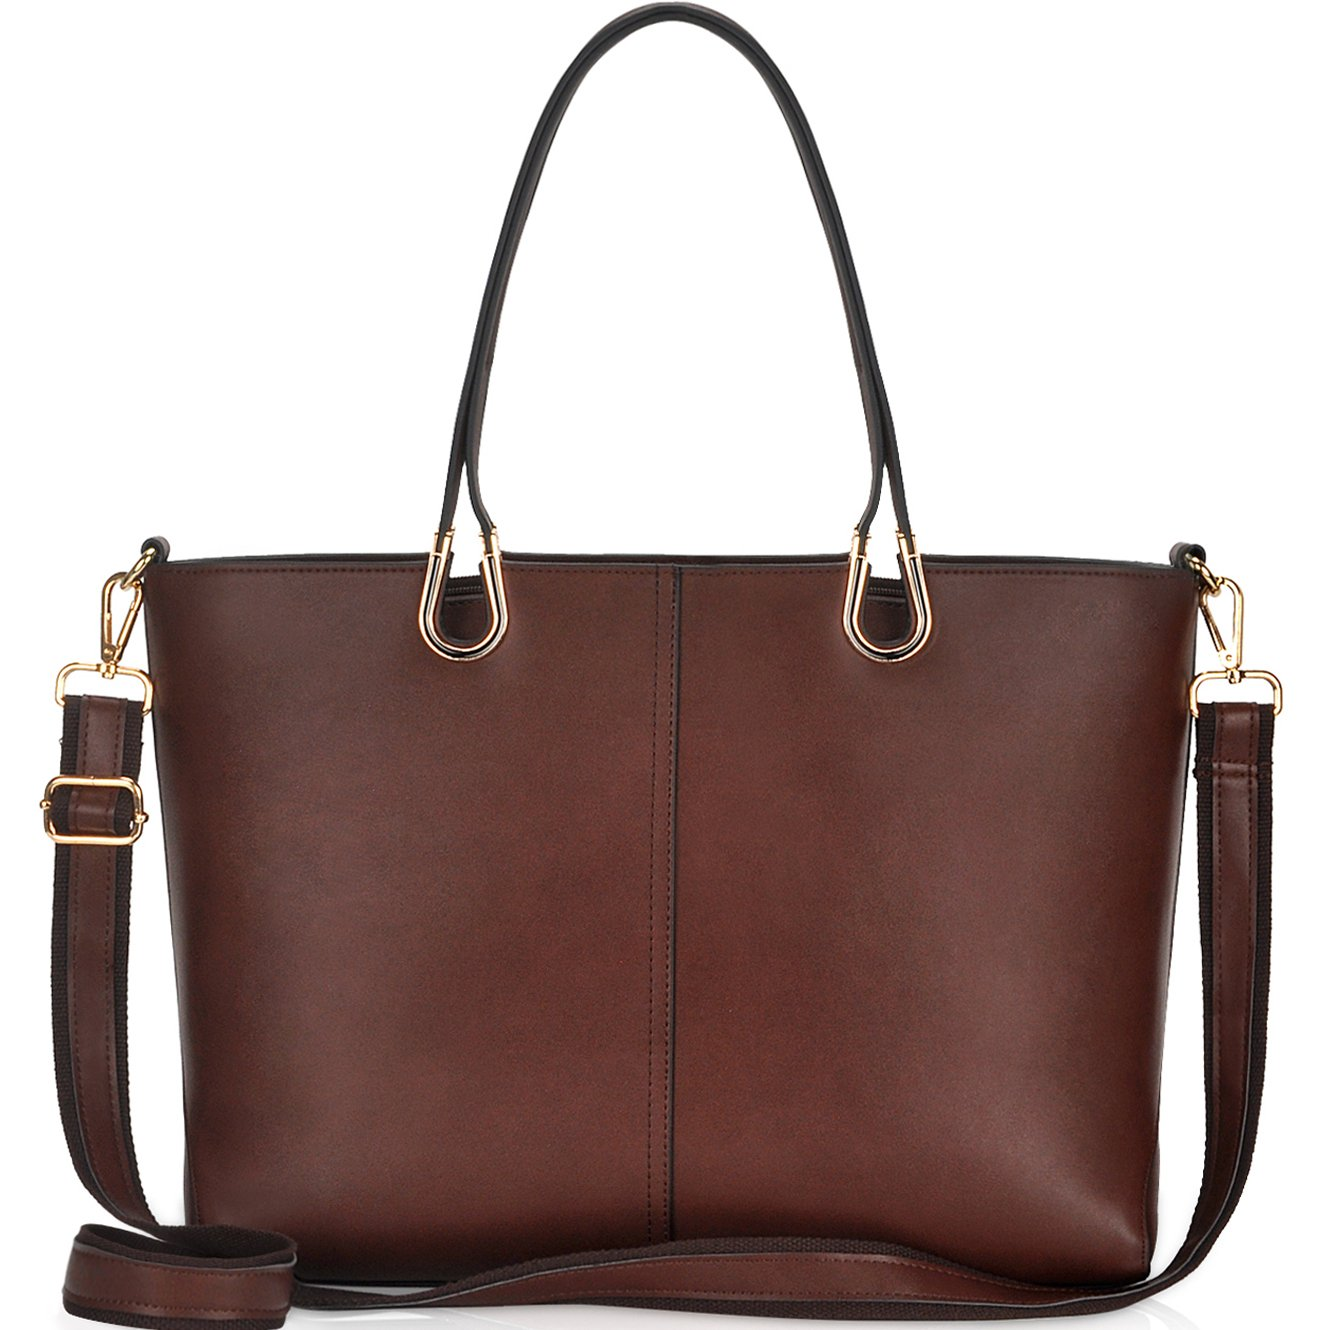 Laptop Bag,Casual Business Laptop Bags for Women 15.6 inch,Large Tote Bag Briefcase with Wide Crossbody Strap[L0017/coffee]